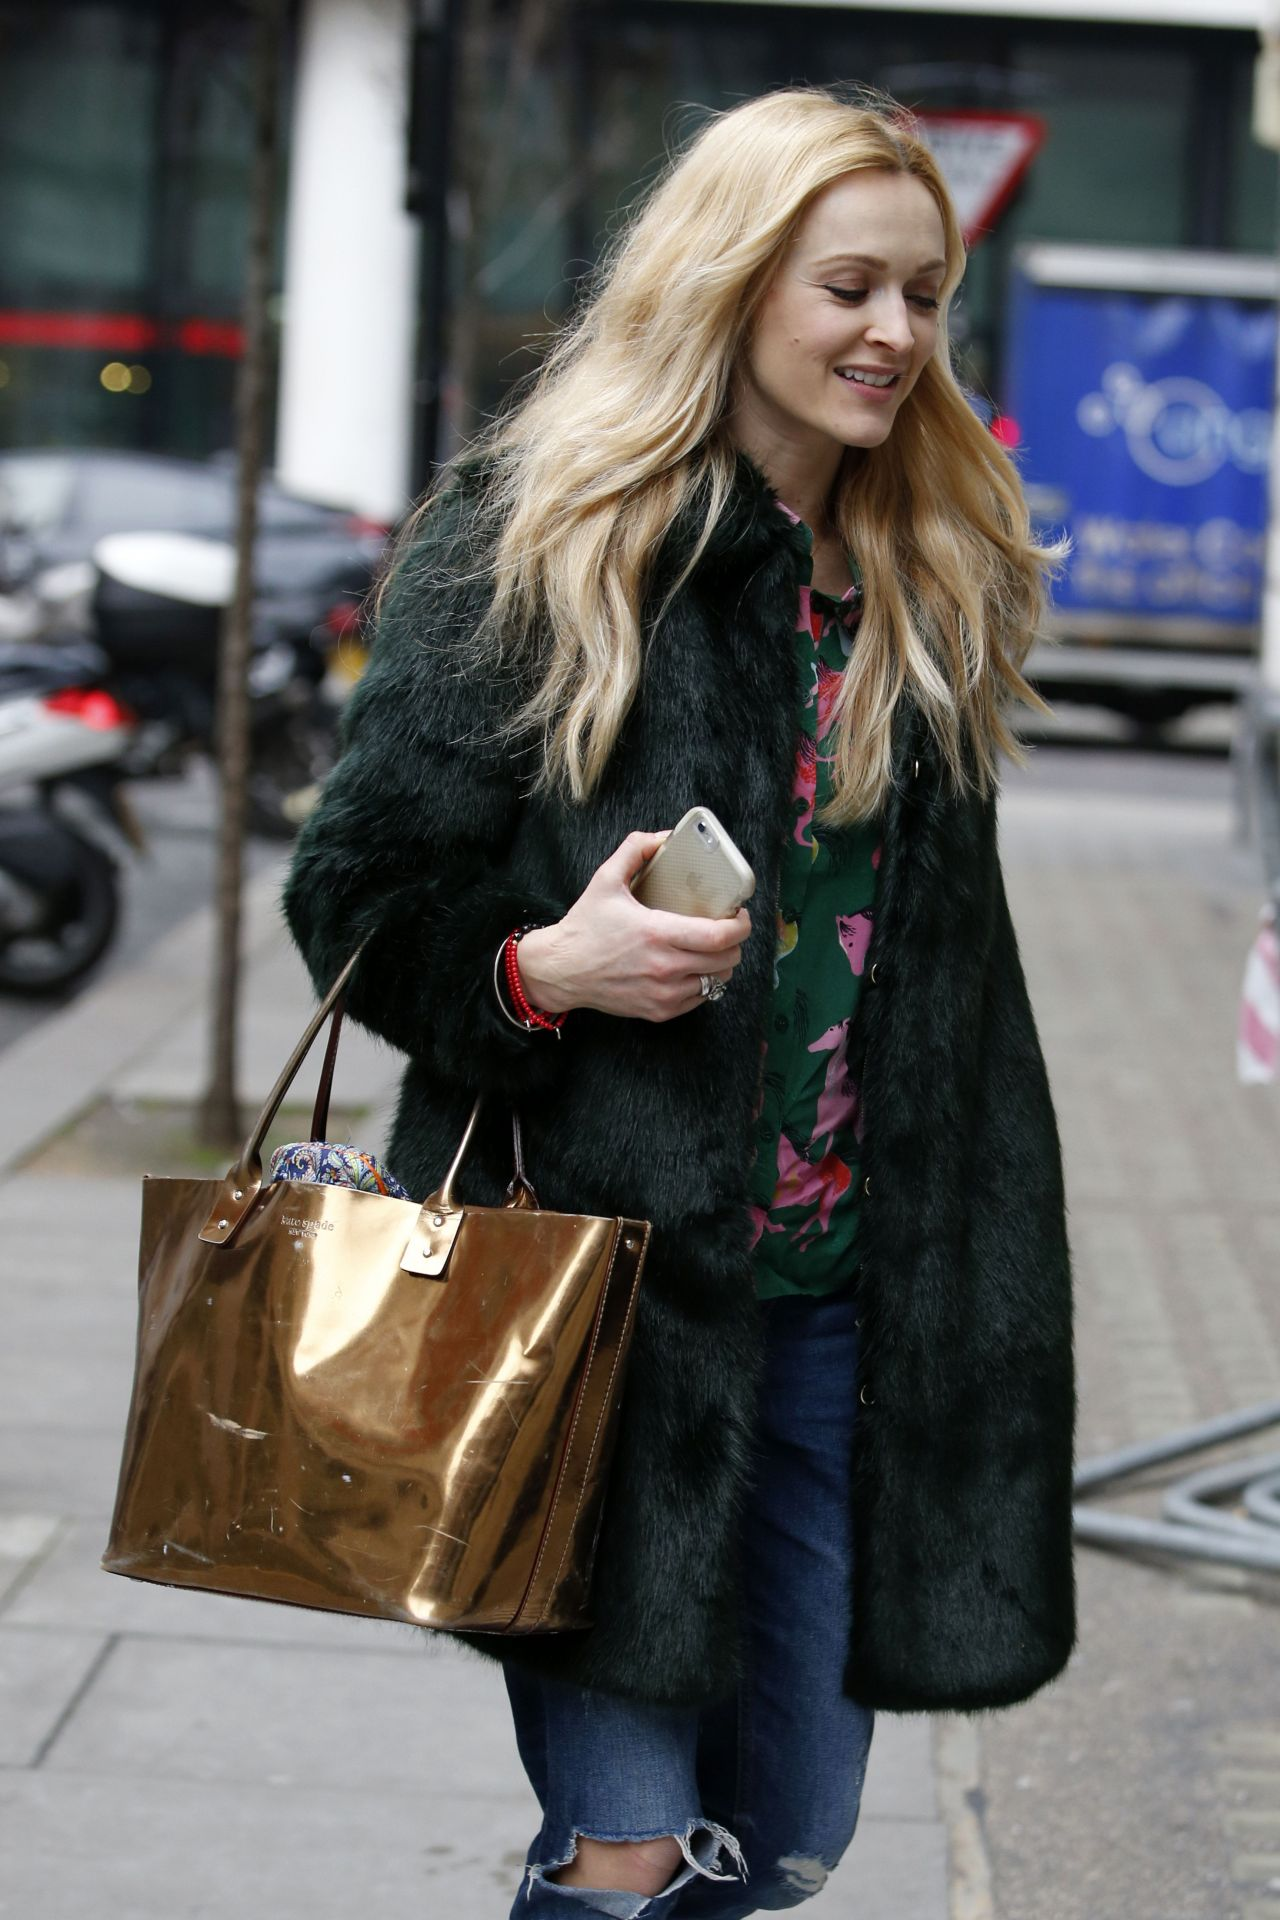 fearne cotton sofa alexis two seater bed cover street style out in london uk 2 15 2017